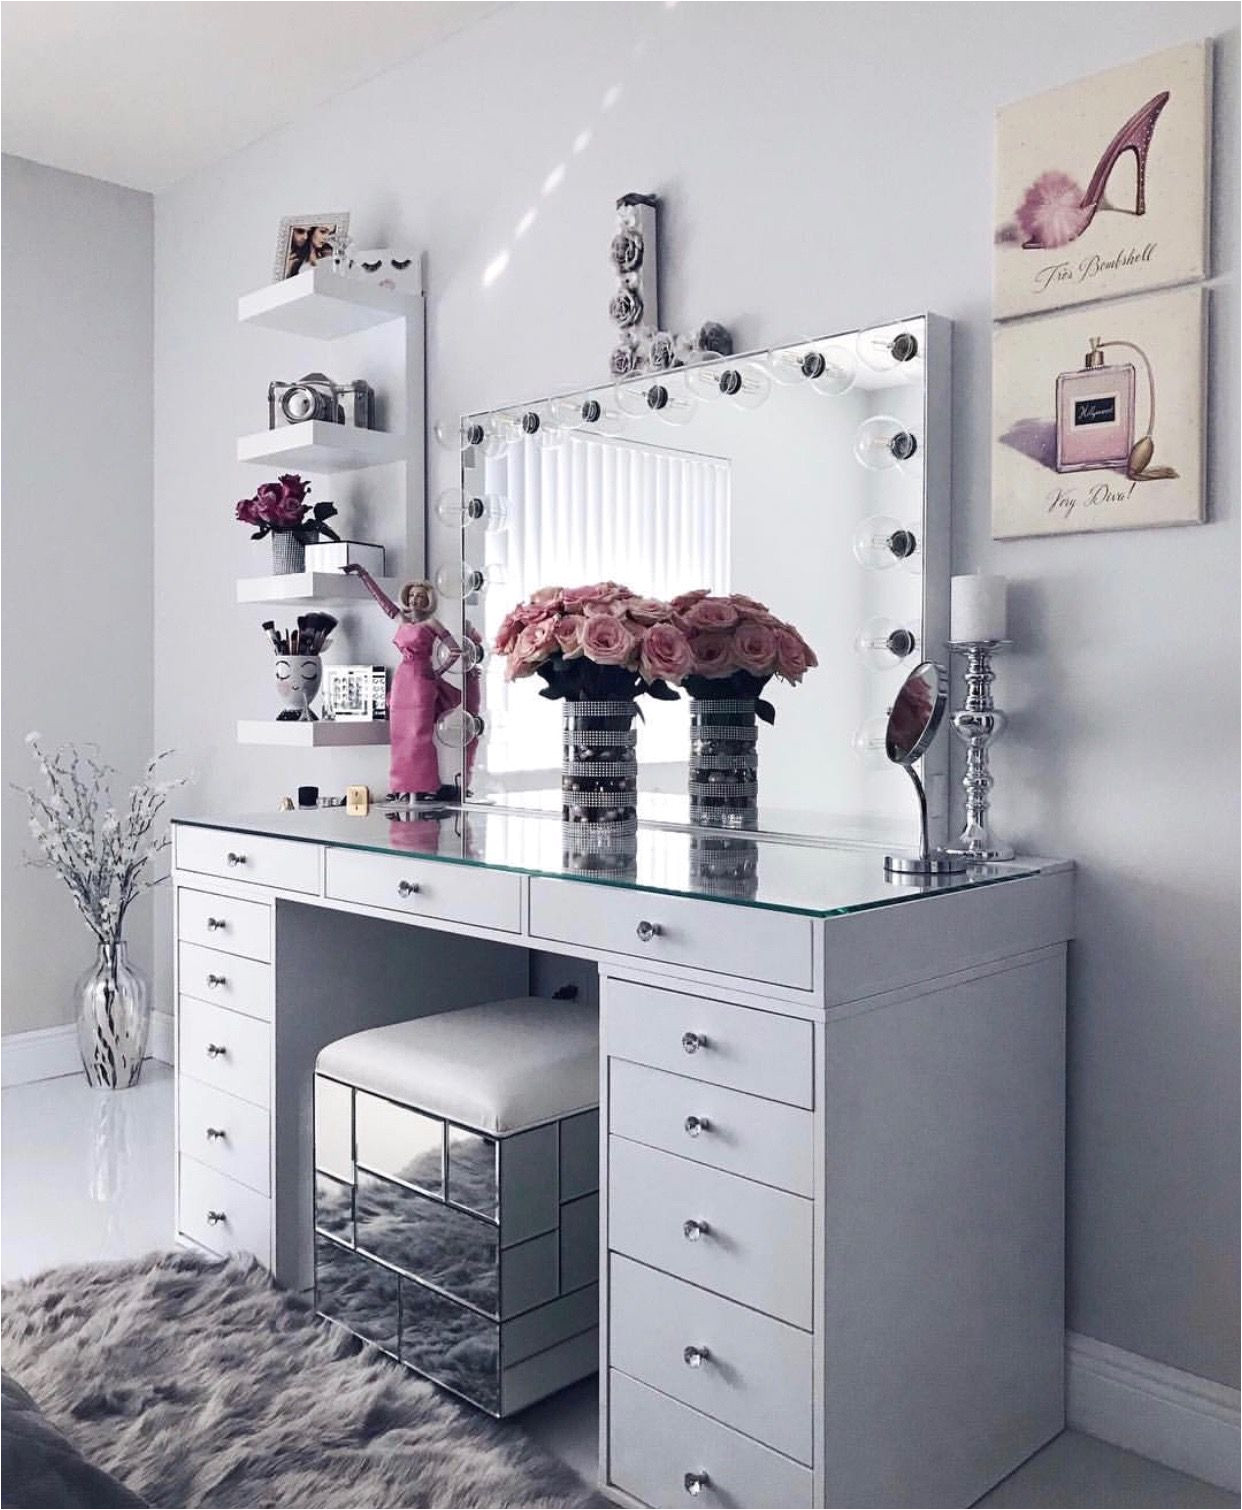 white clean sleek vanity decor paintings flowers glass furniture perfect idea for smaller apartments